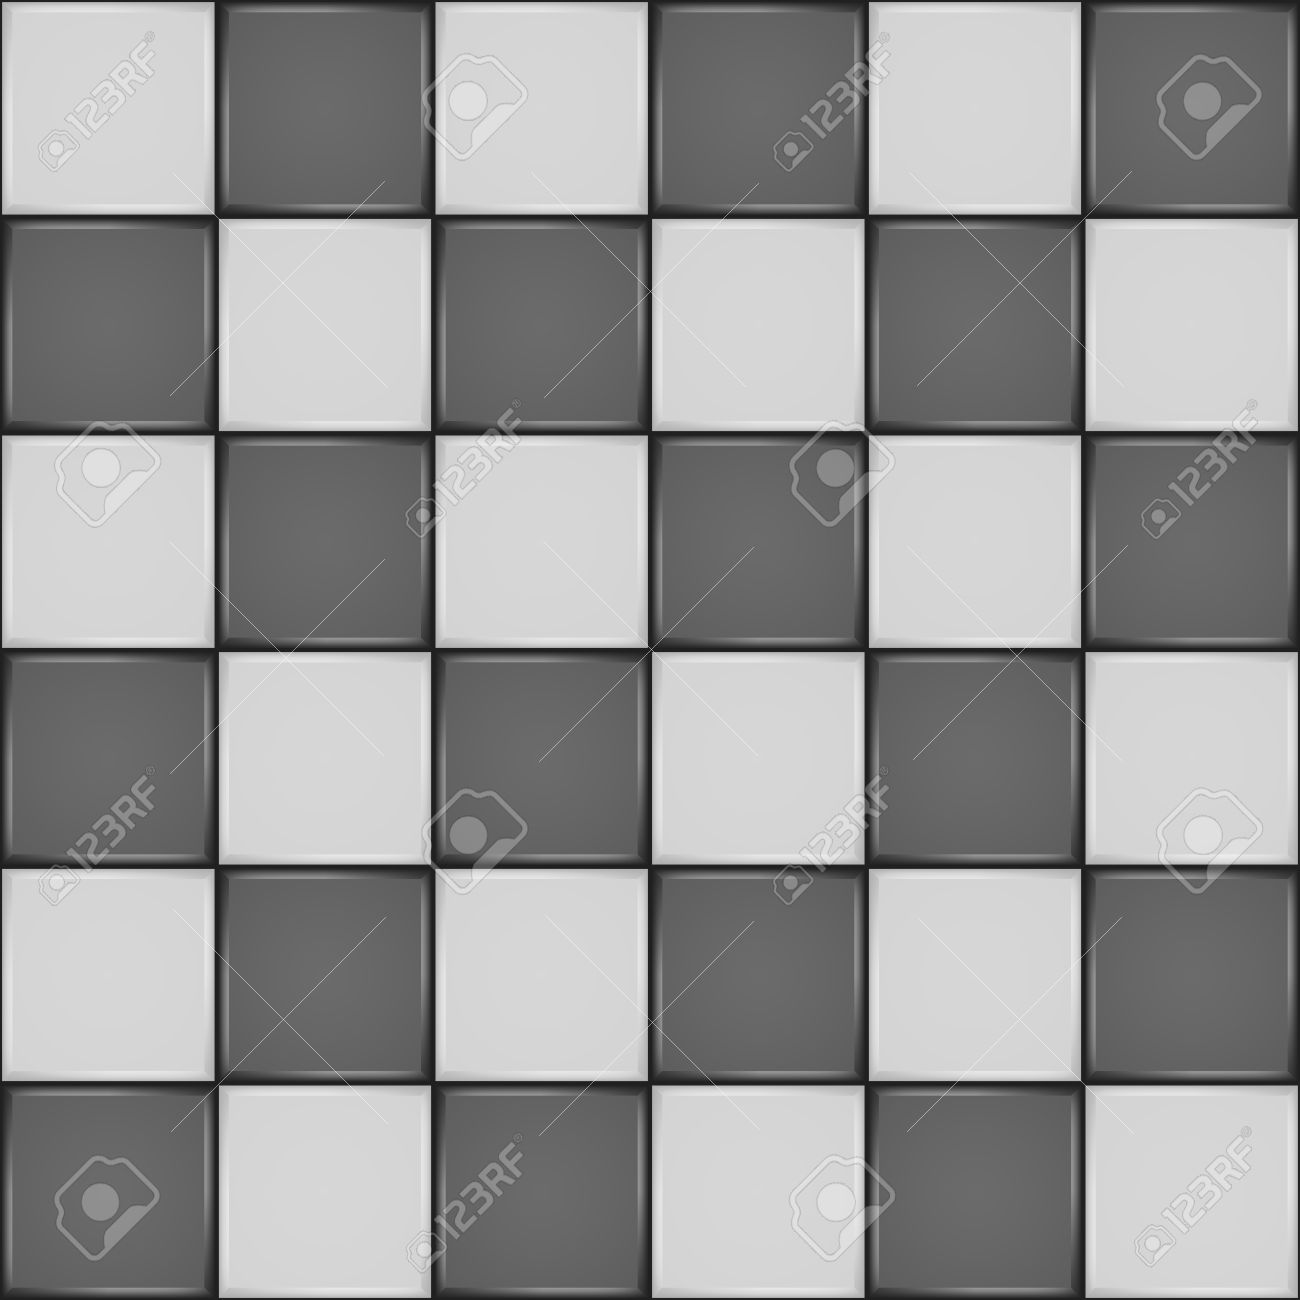 Black And White Ceramic Tile Bathroom Wall Or Floor Seamless ...